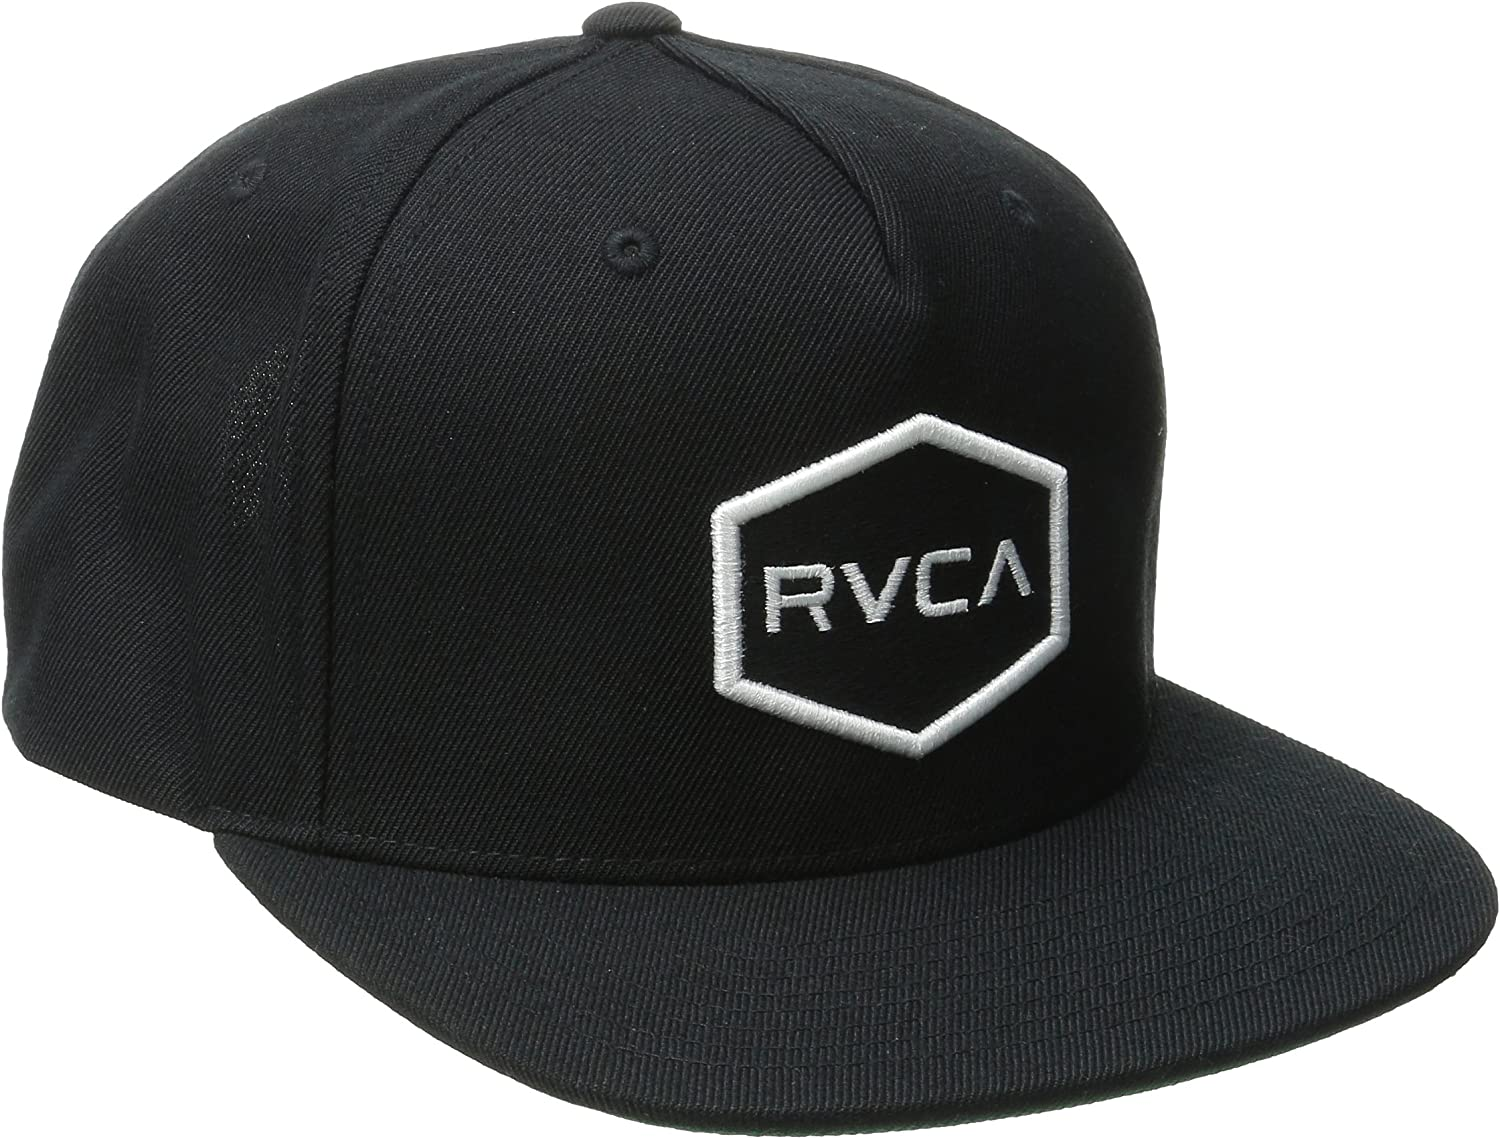 RVCA Commonwealth Snapback Hat Black 1SZ: Clothing